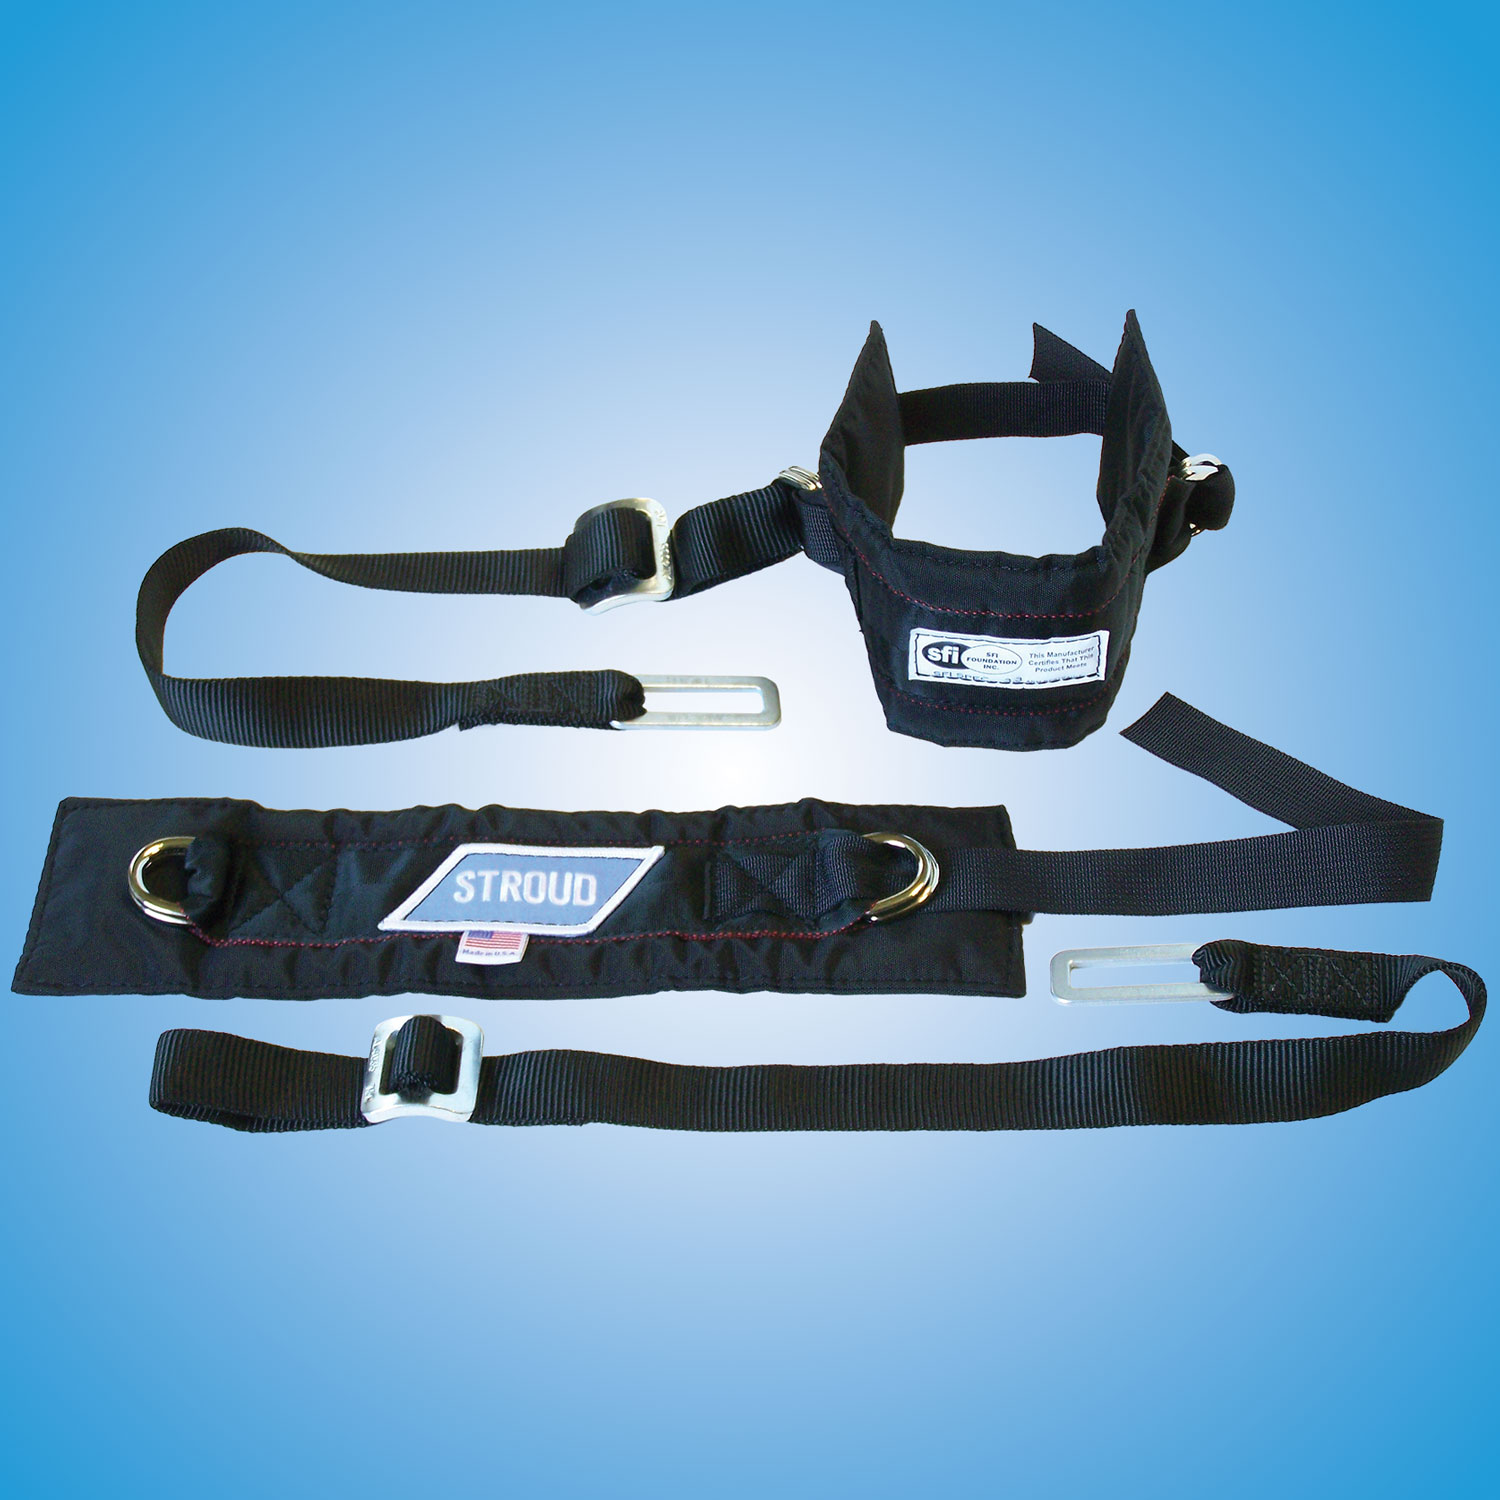 Arm Restraints   SFI approved with 2 inch wide arm bands with 1 inch wide adjustable restrainer straps.  Part #600 — $60